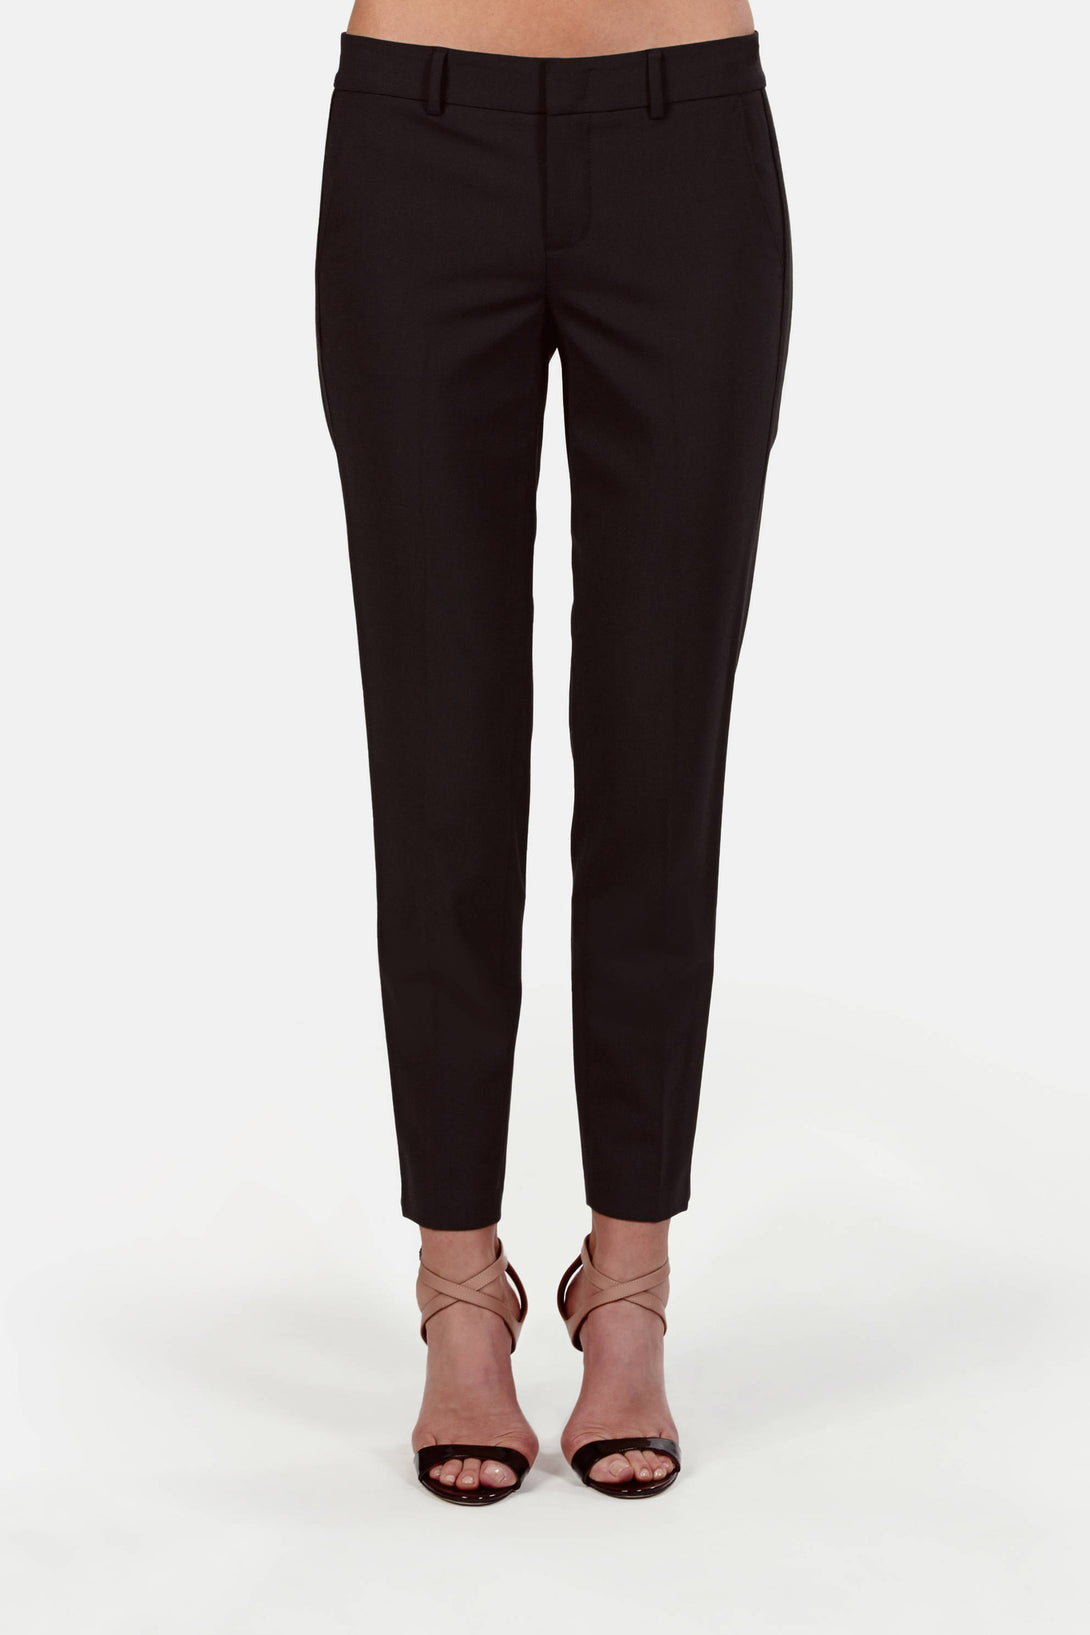 Tropical Wool Side Strapping Pant